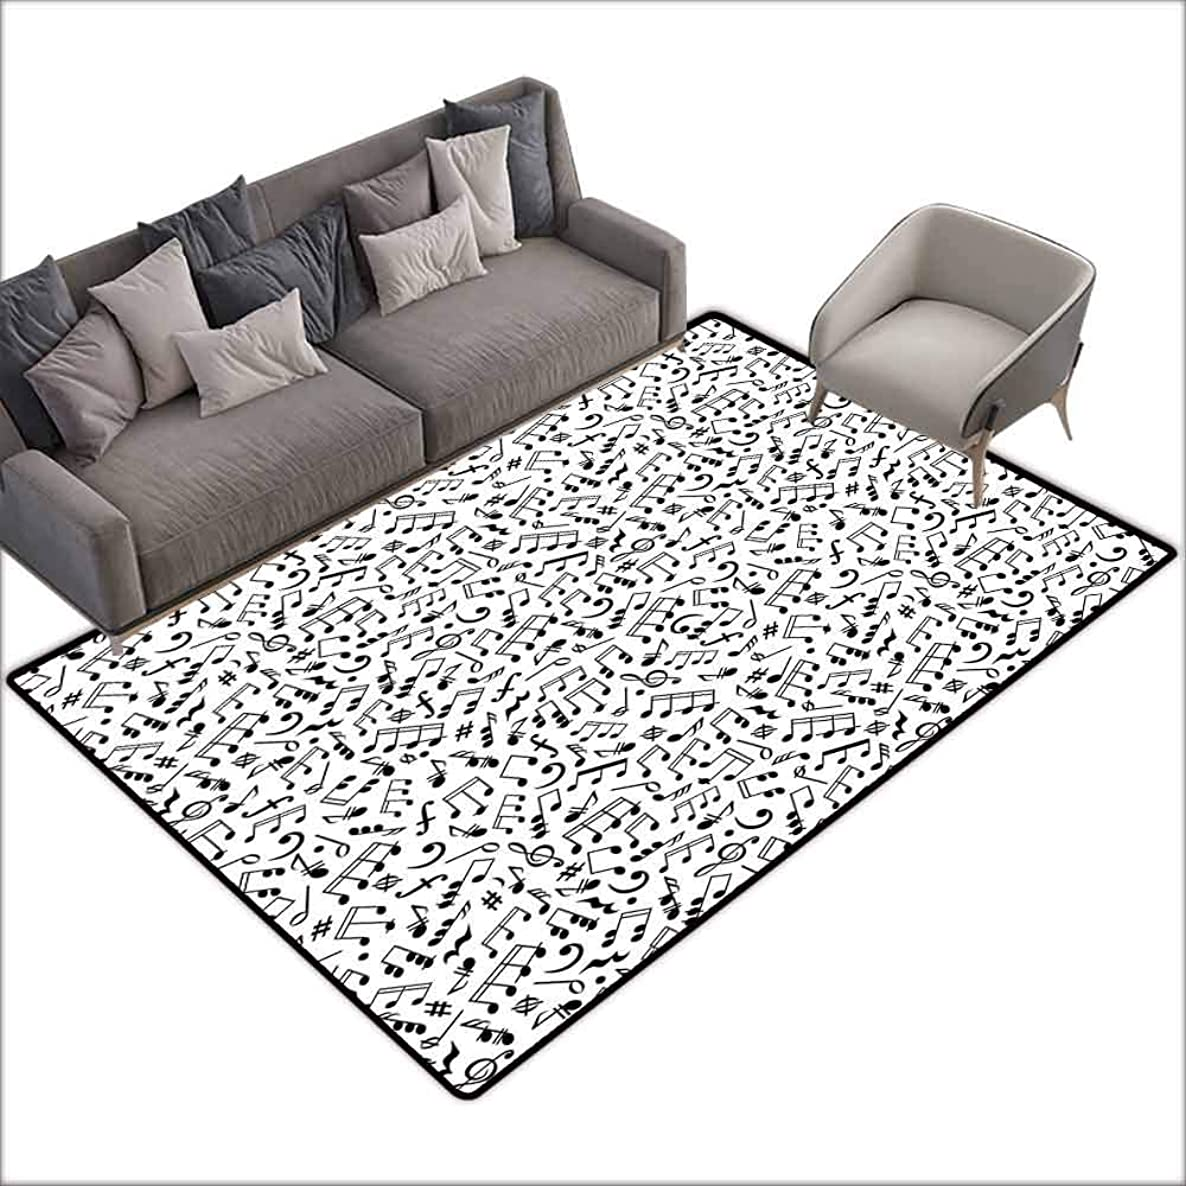 Large Floor Mats for Living Room Colorful Black and White,Musical Composition with Notes Quavers Chords Treble Clefs Sheet Elements,Black White 80